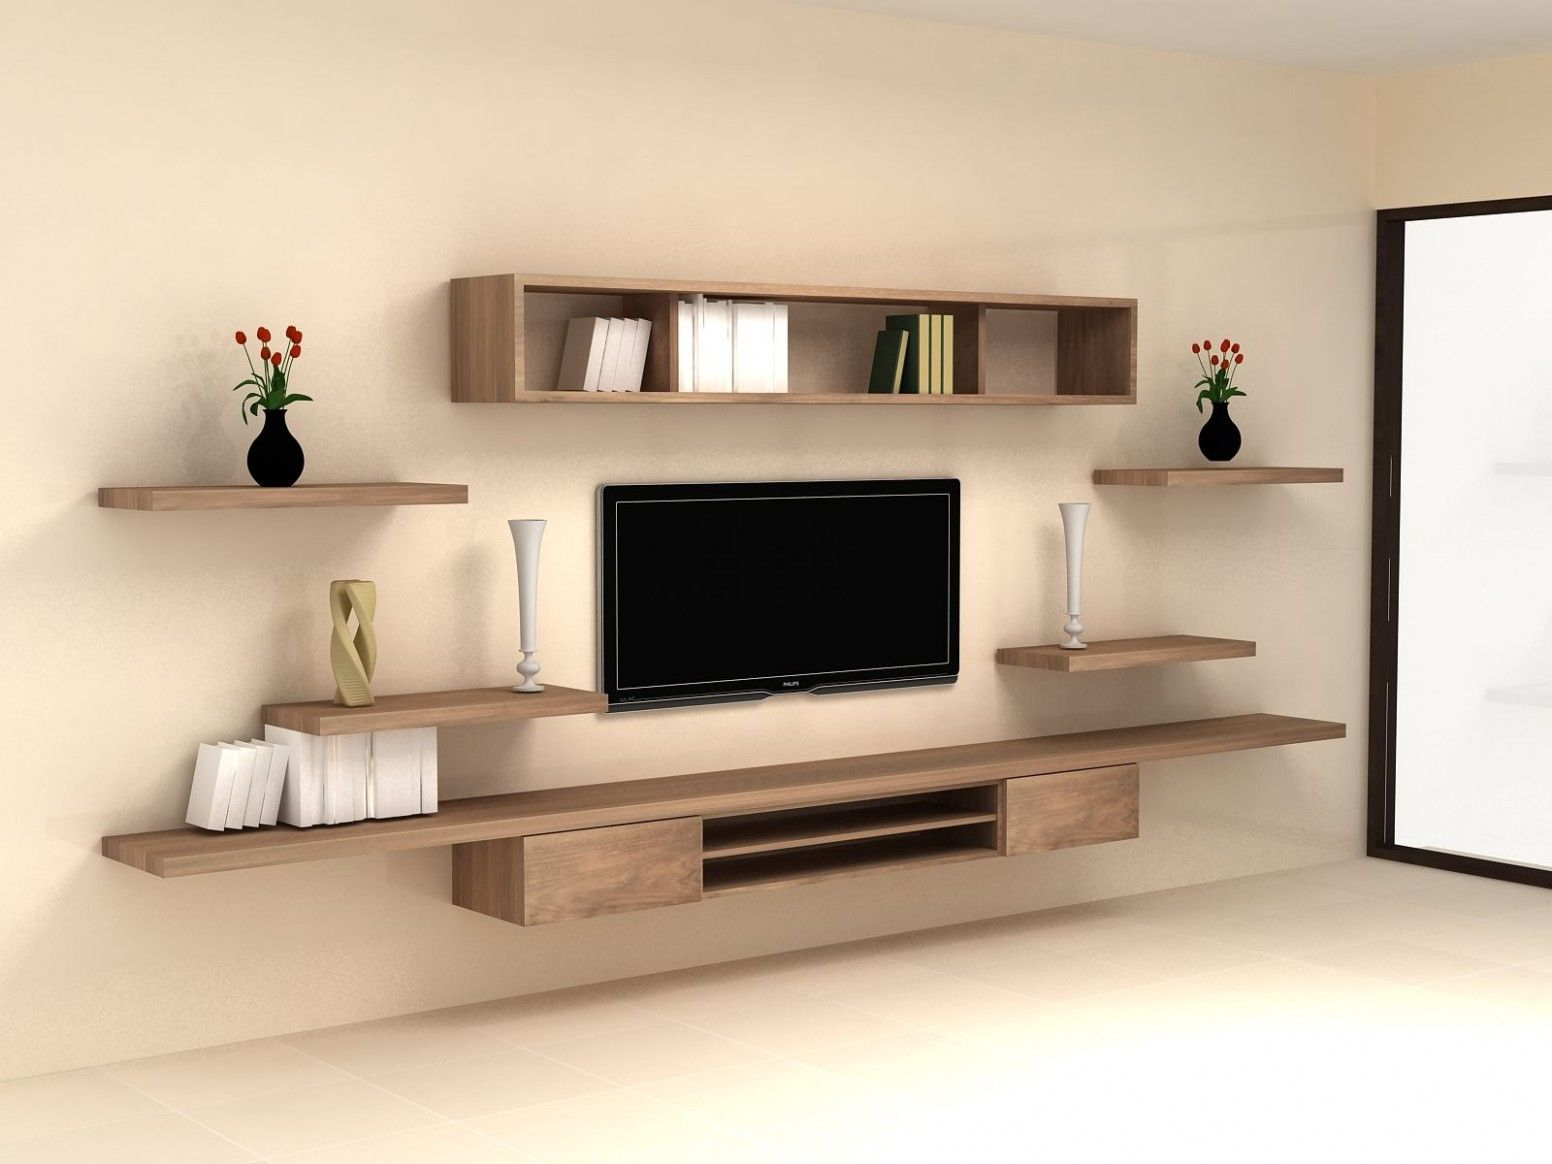 Wall Mounted Tv Design In Living Room Living Room Tv Wall Tv Wall Decor Wall Mounted Tv Cabinet